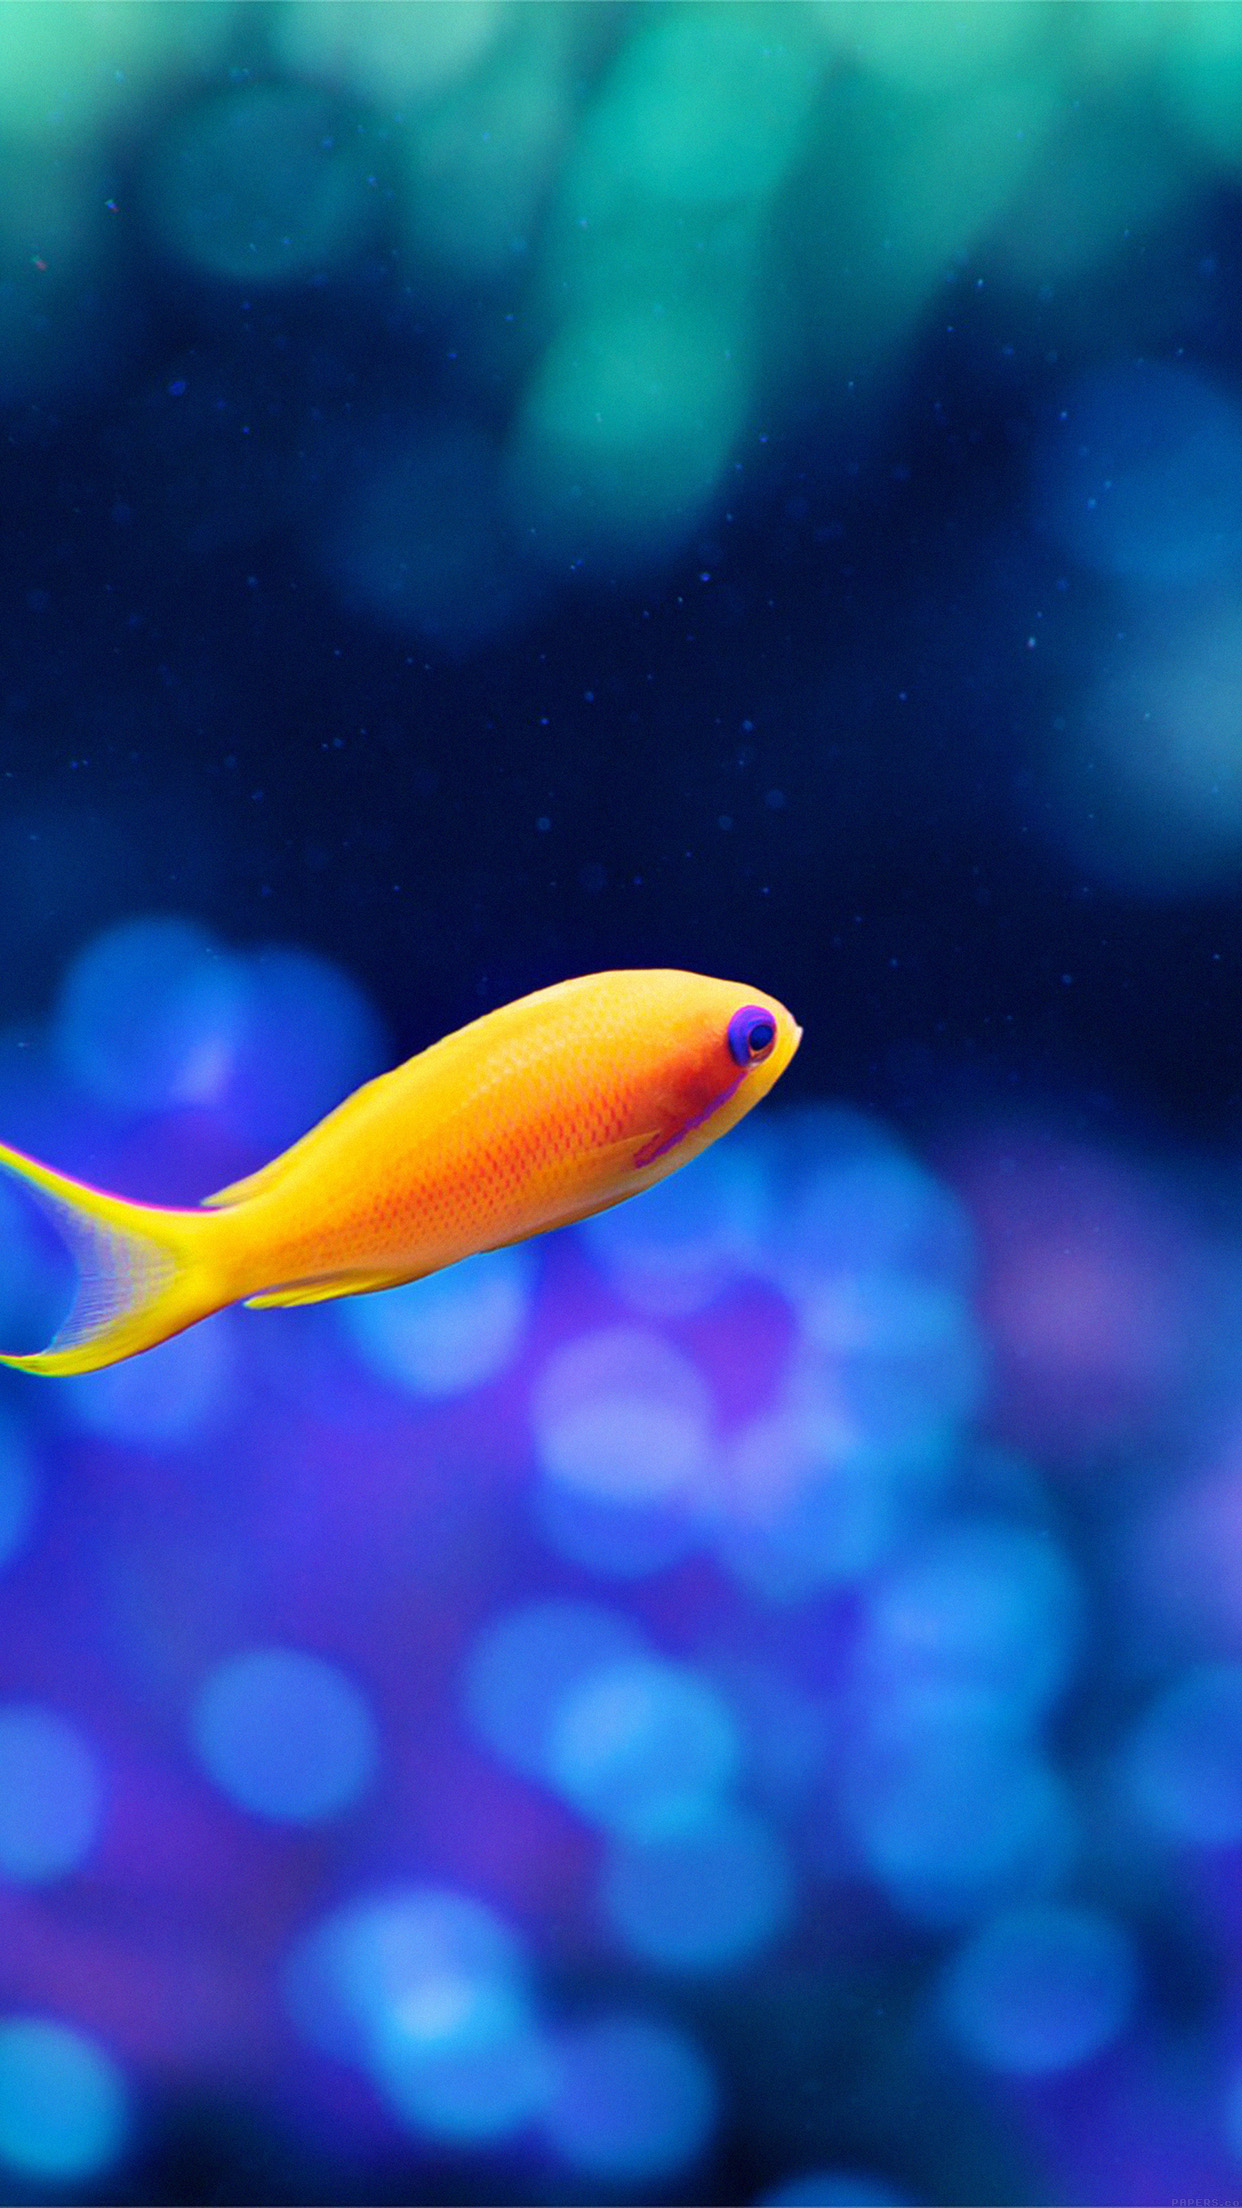 Cute Fish Ocean Sea Animal Nature Android wallpaper